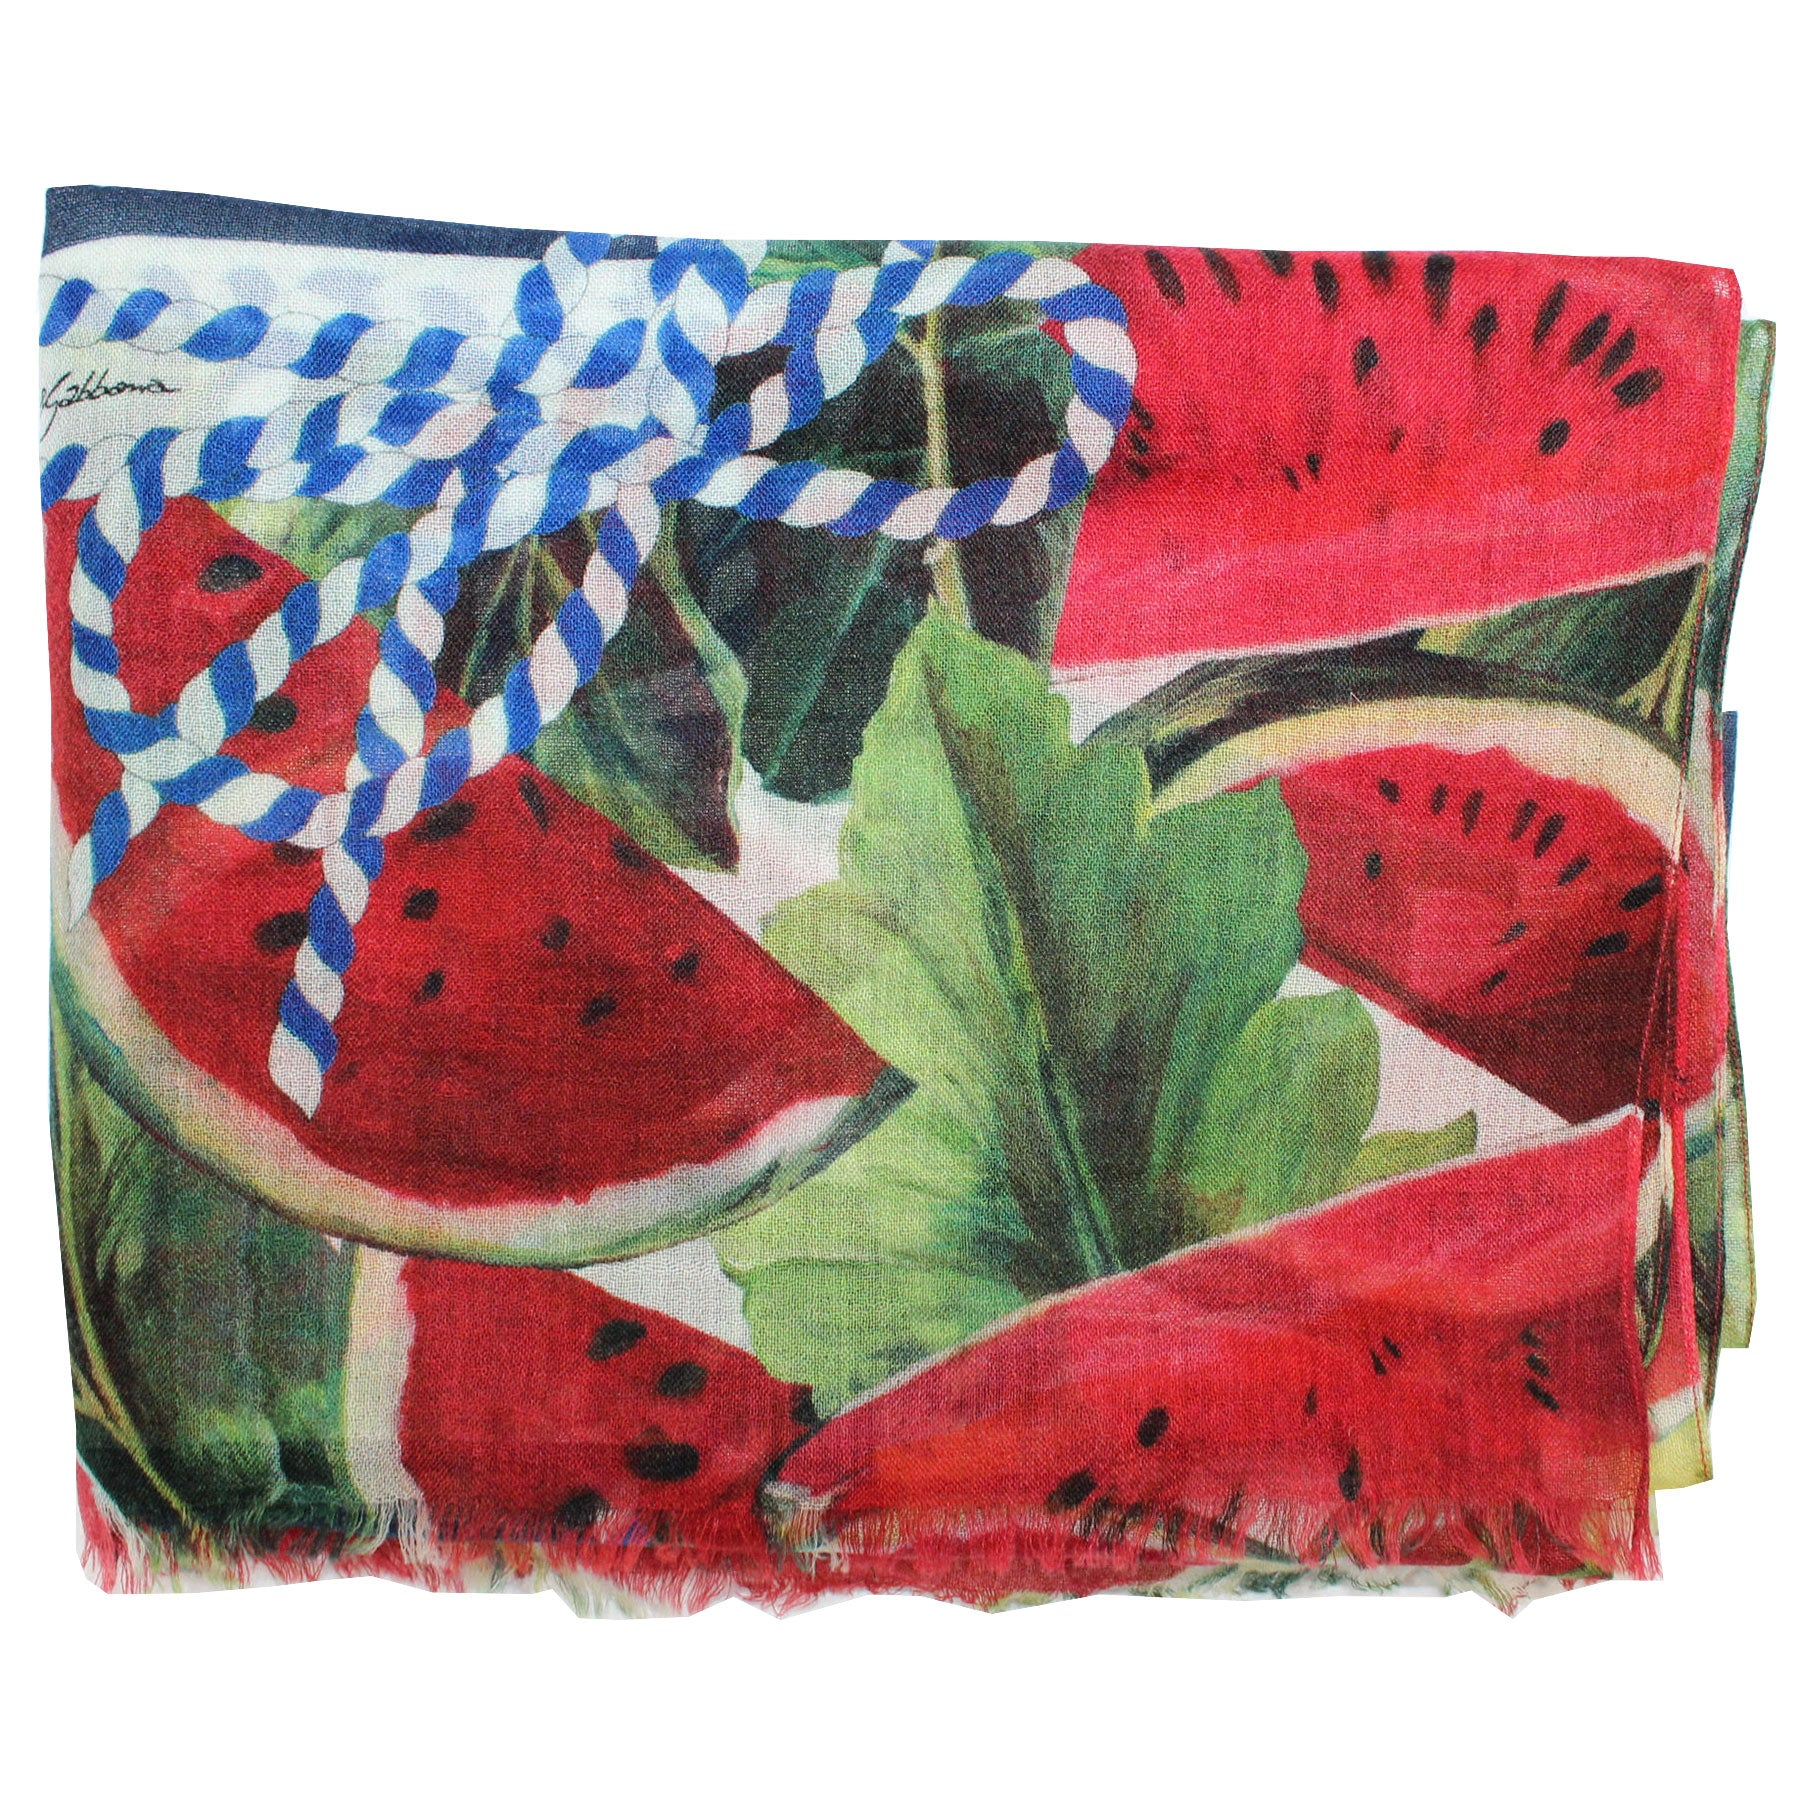 Dolce & Gabbana Scarf Red Green Watermelons - Extra Large Cashmere Wrap